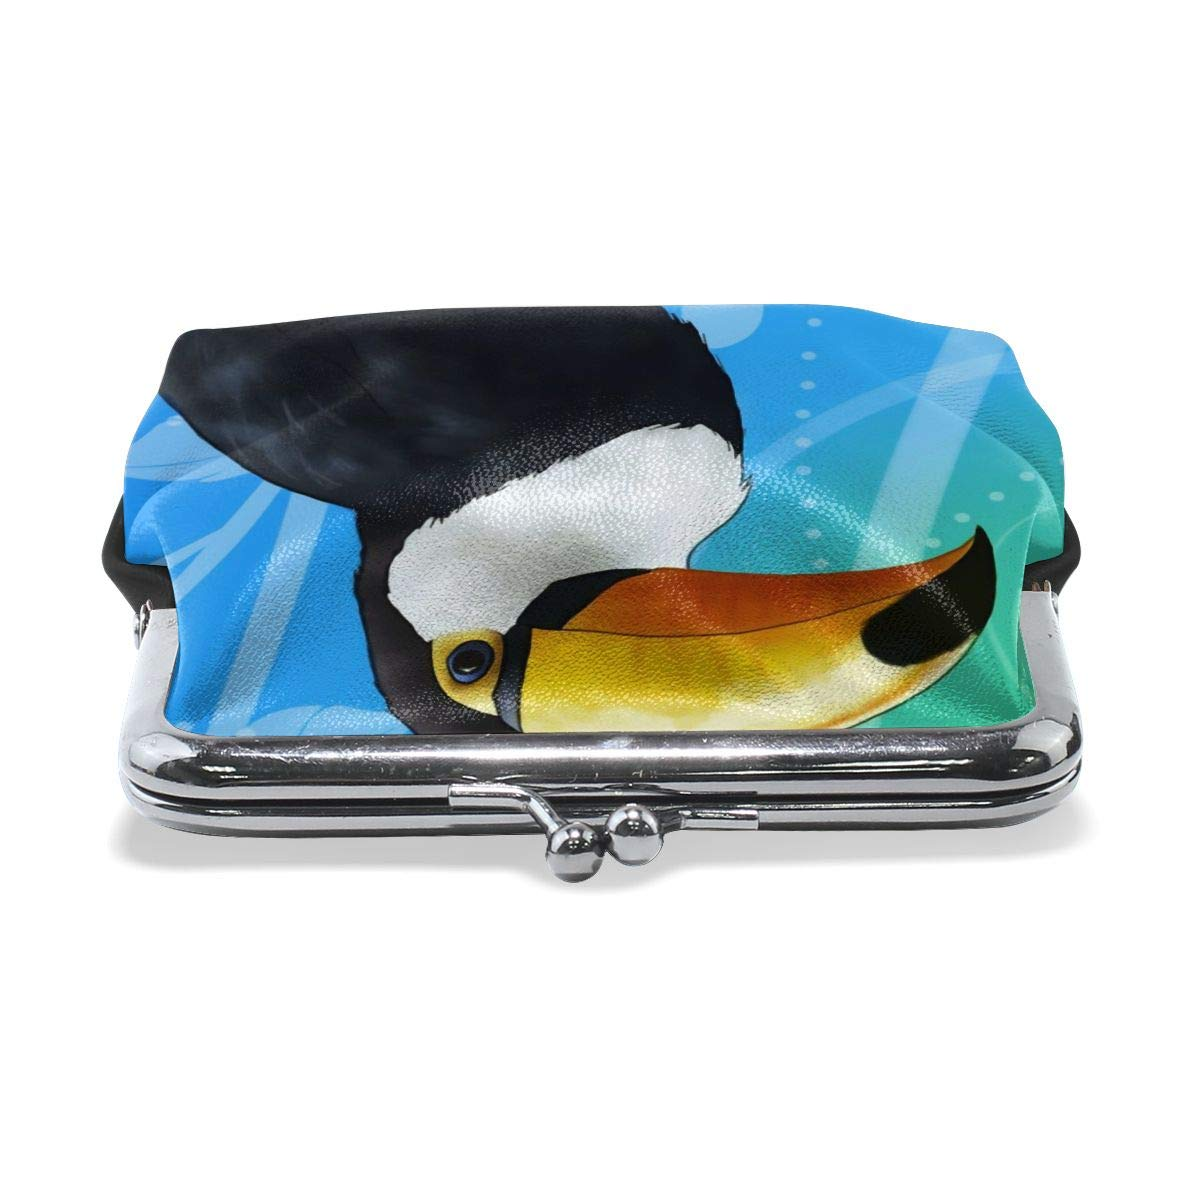 Blue Beaks Toucan Cute Vintage Pouch Girl Kiss-lock Change Purse Wallets Buckle Leather Coin Purses Key Woman Printed